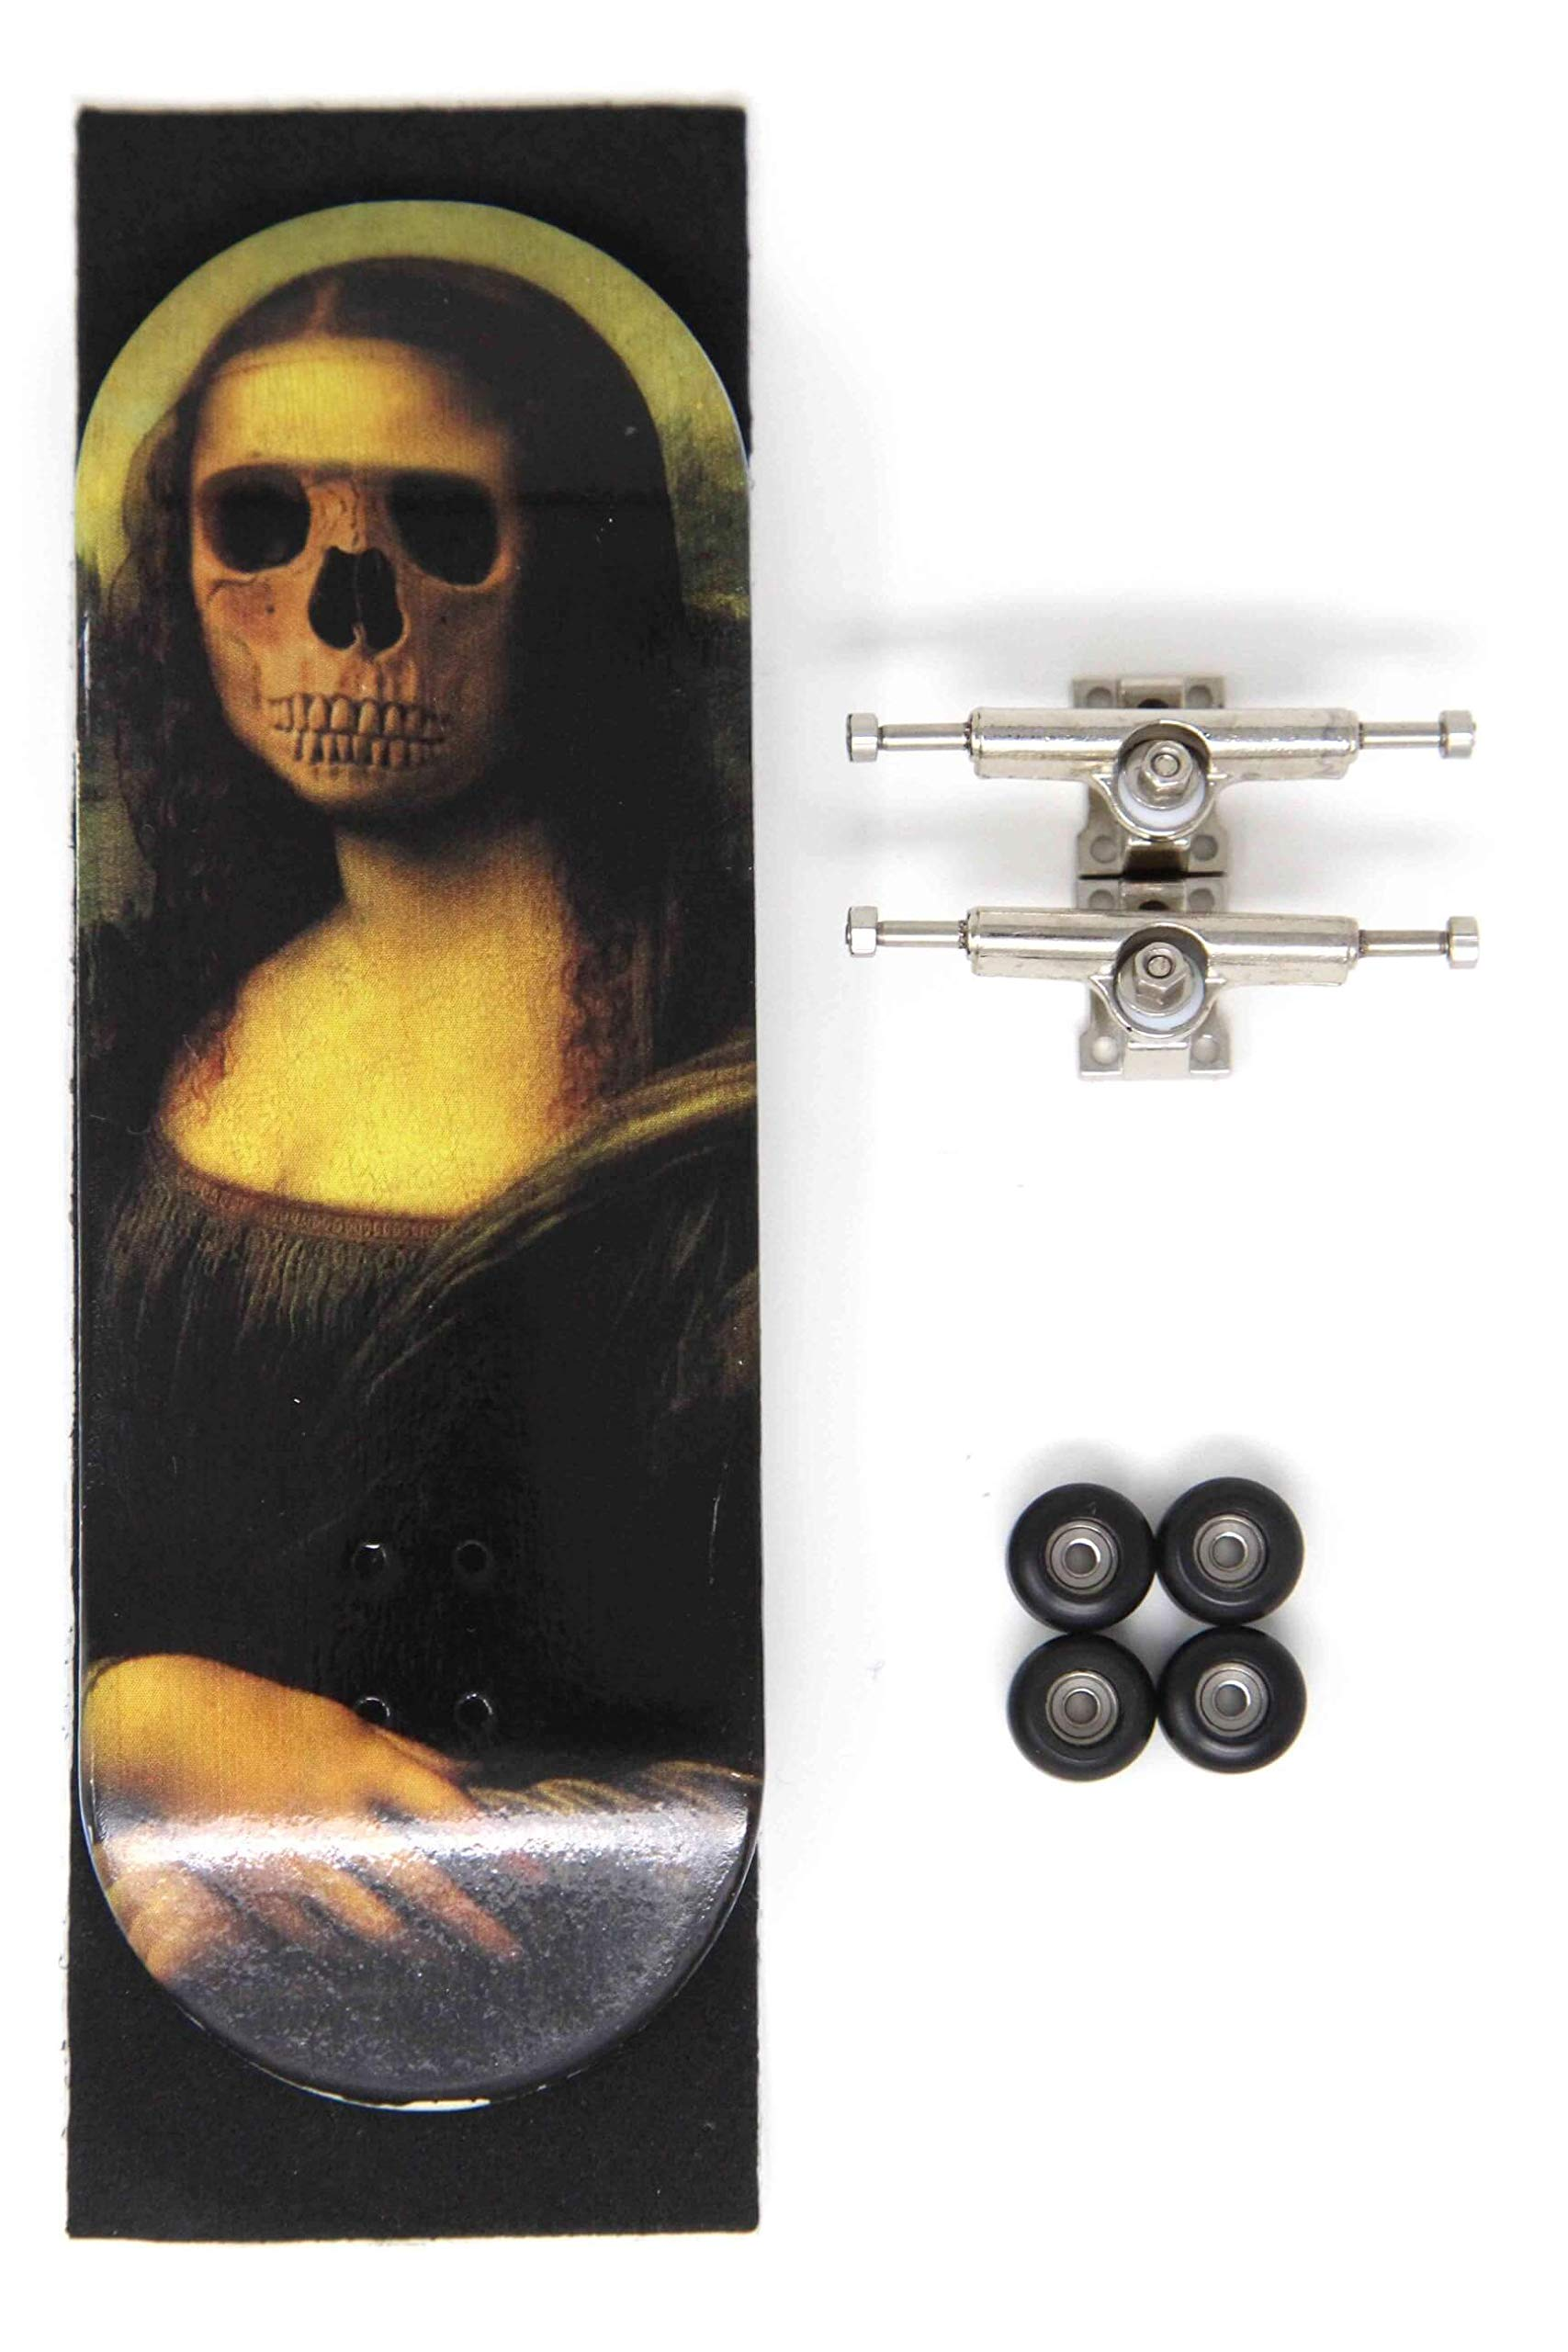 Skull Fingerboards Mona 34mm Complete Professional Wooden Fingerboard Mini Skateboard 5 PLY with CNC Bearing Wheels by Skull Fingerboards (Image #1)